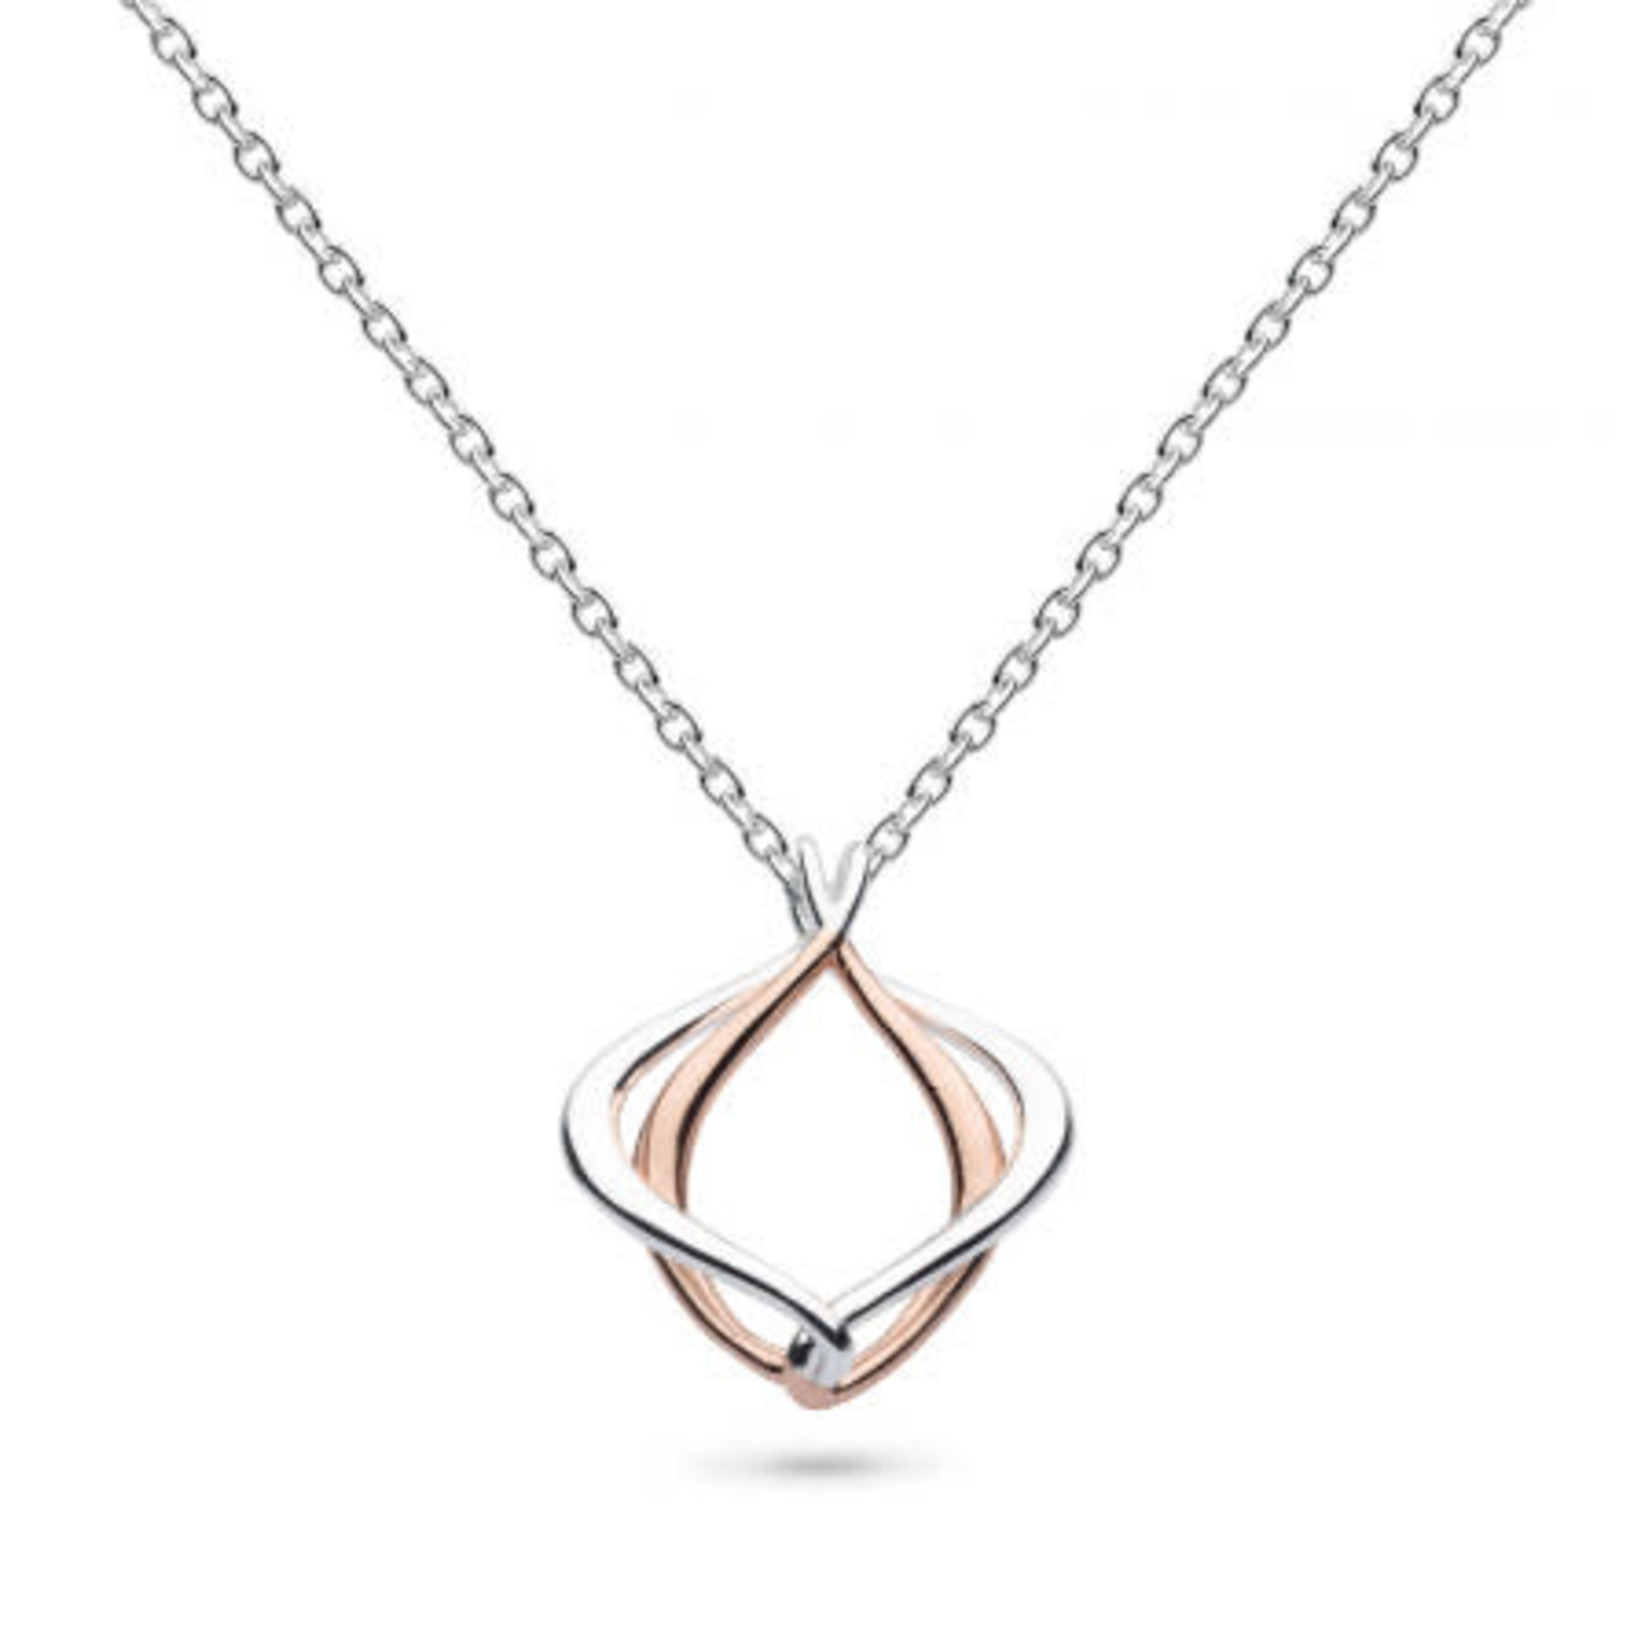 Entwine Alicia Small Rose Necklace